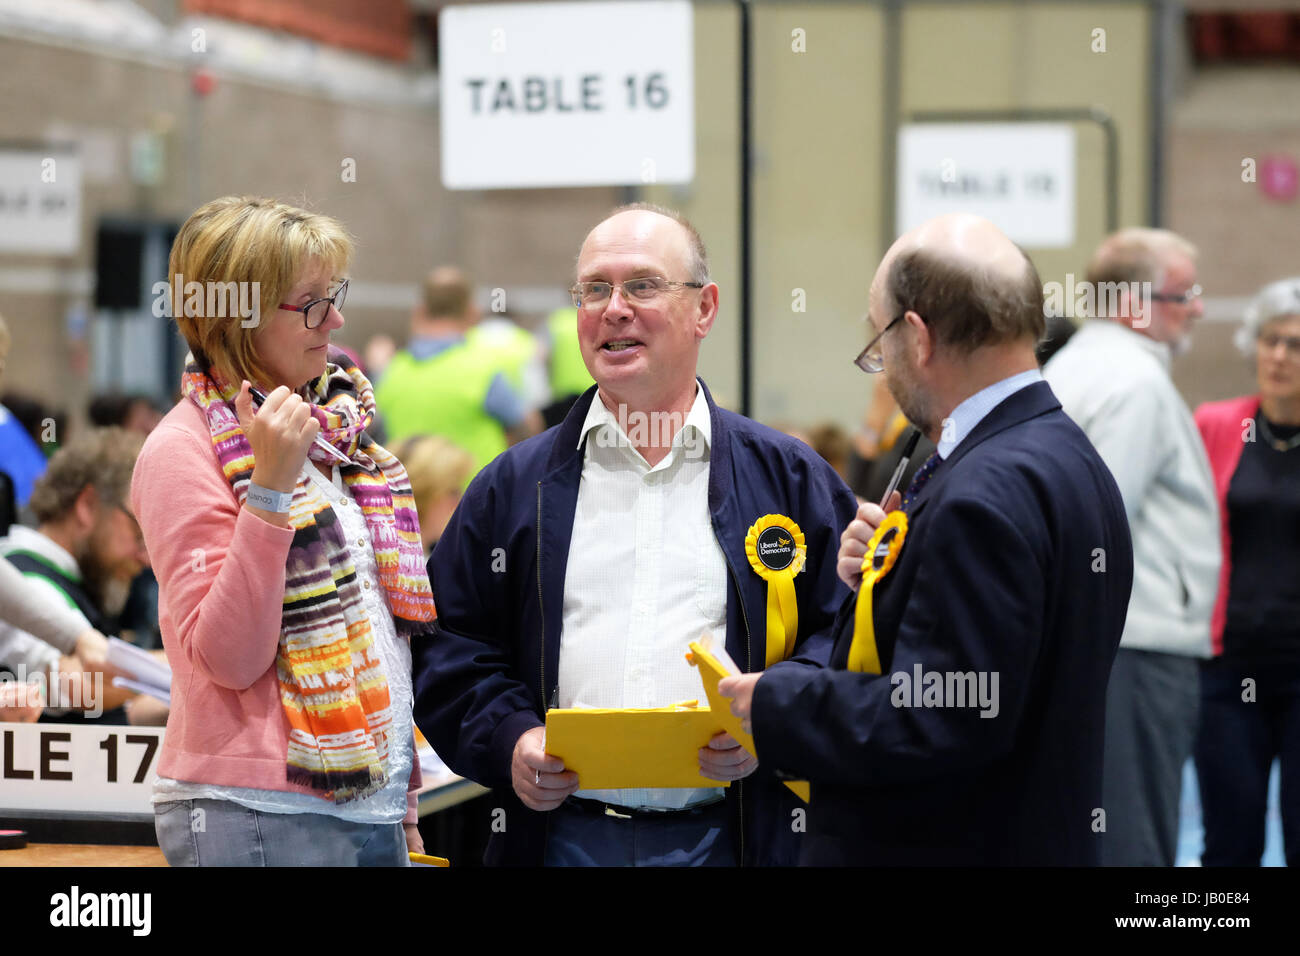 Hereford, Herefordshire, UK - Thursday 8th June 2017 - Party teller workers from the Liberal party confer with each - Stock Image